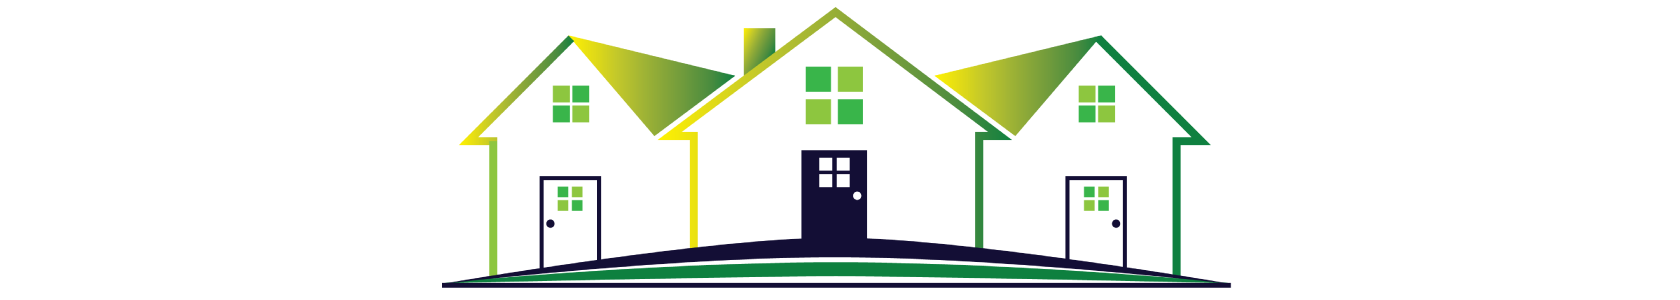 Contractor clipart house paint. About green builders ca